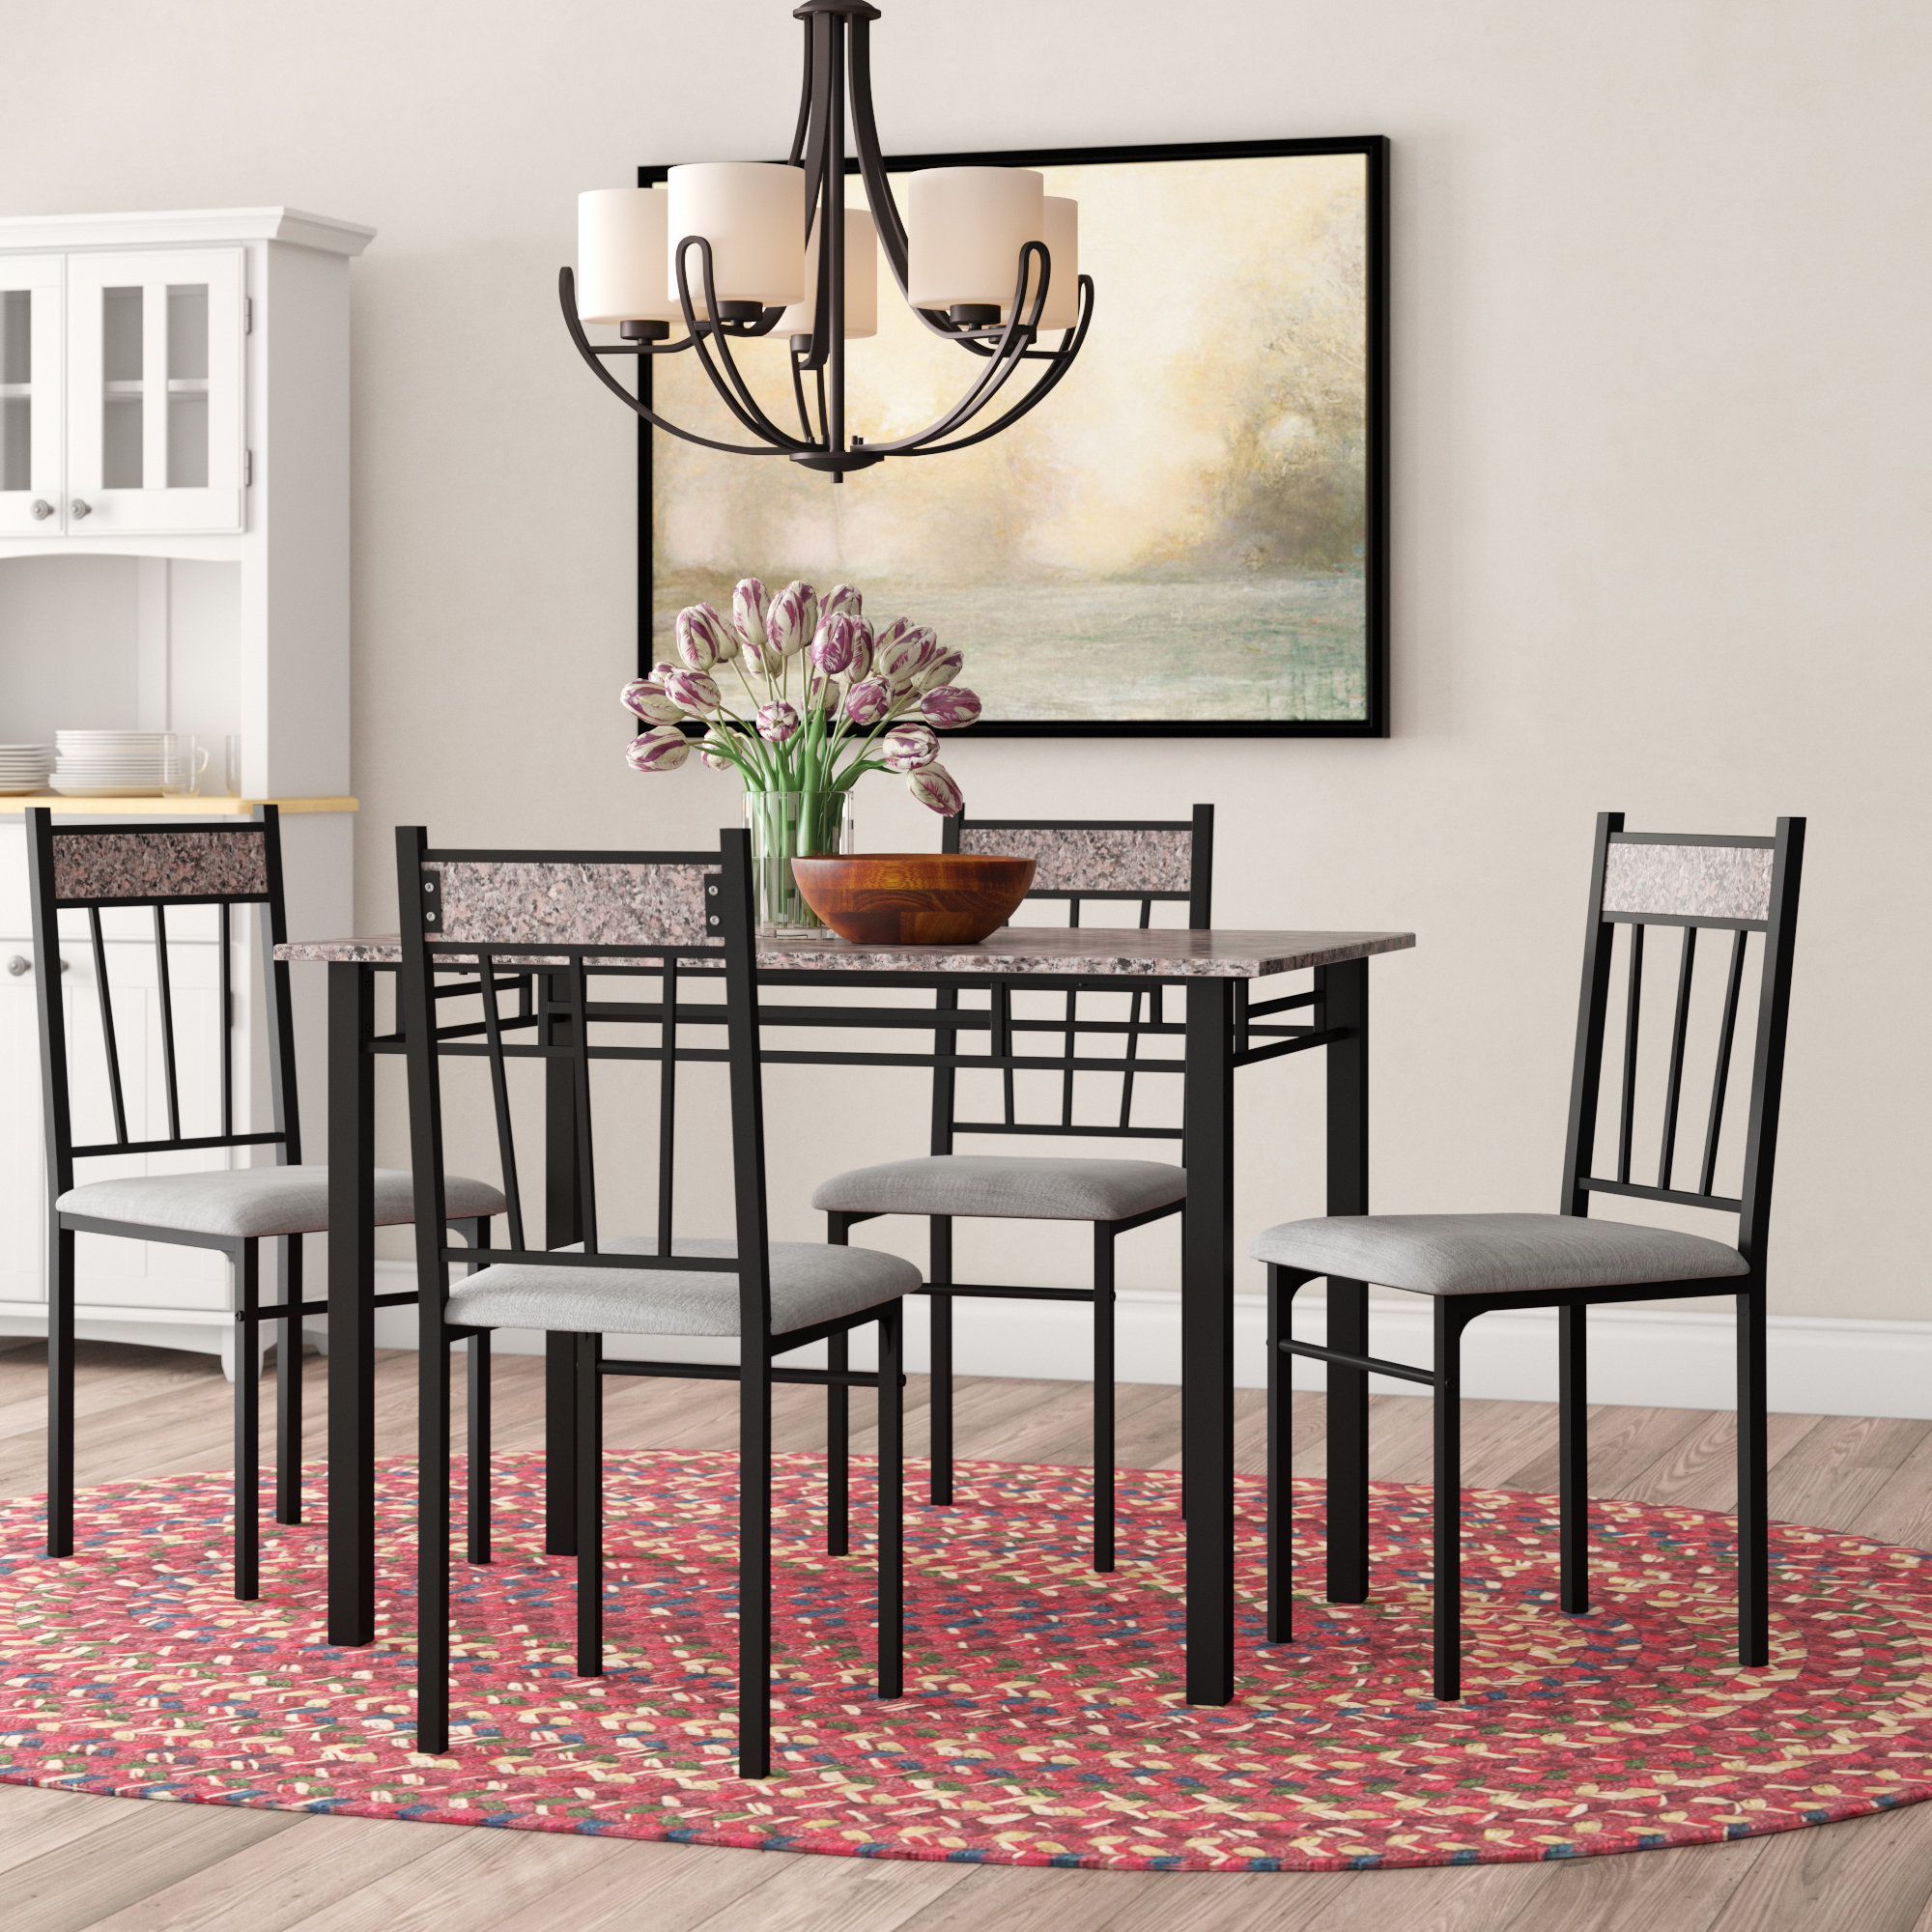 Caspar 5 Piece Dining Set Inside 2018 Lightle 5 Piece Breakfast Nook Dining Sets (View 1 of 20)